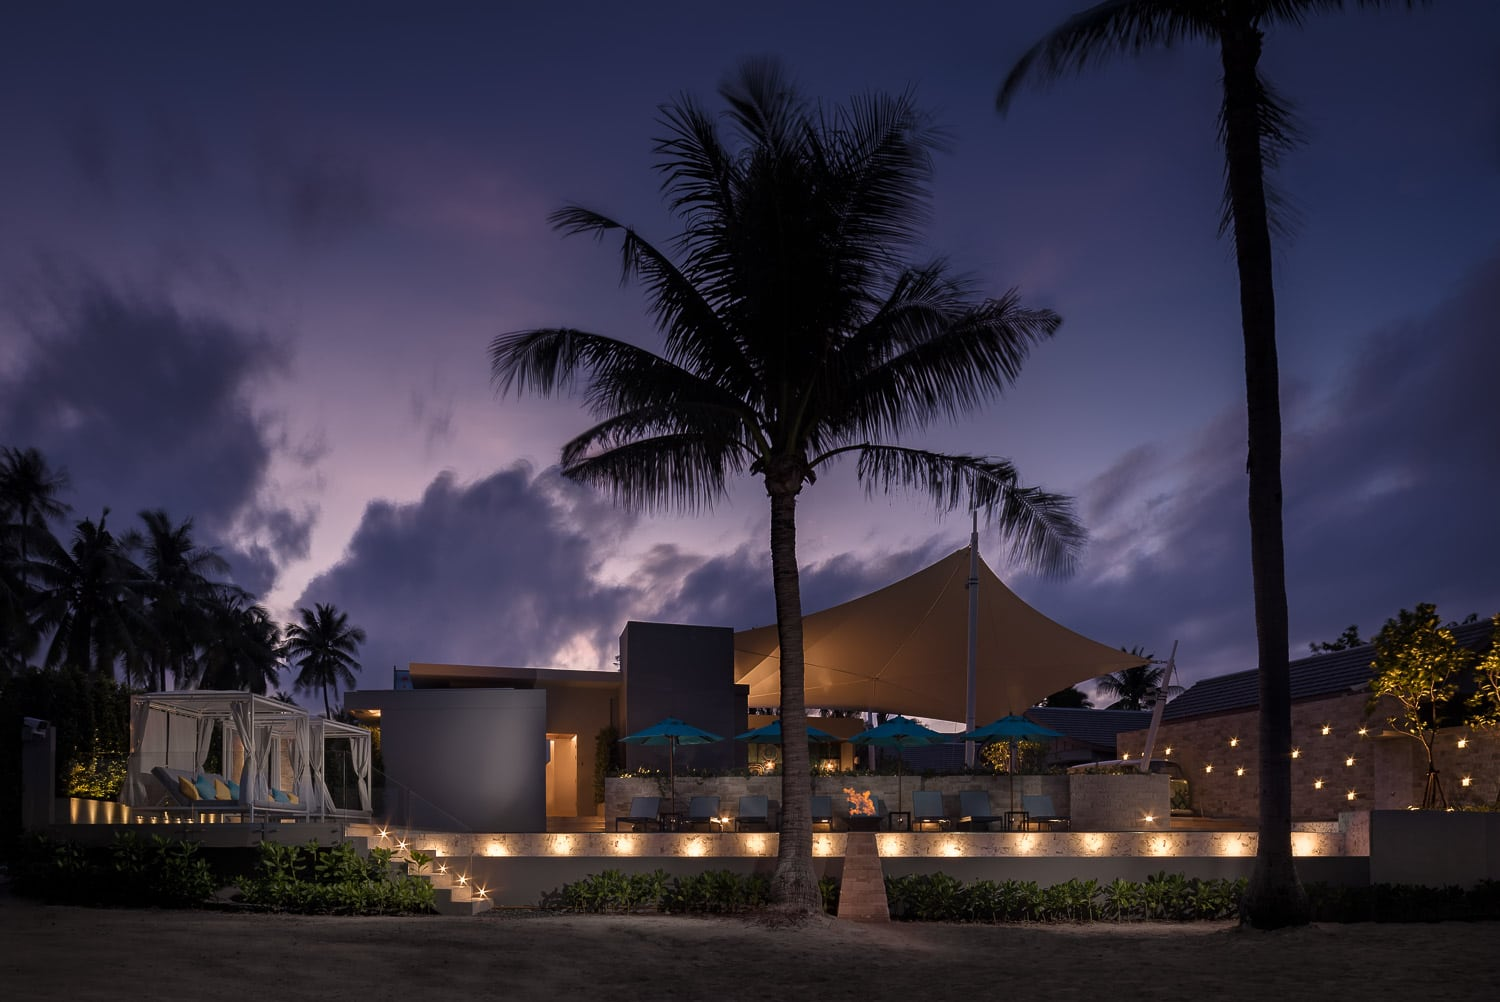 Best Hotel Photography Tips